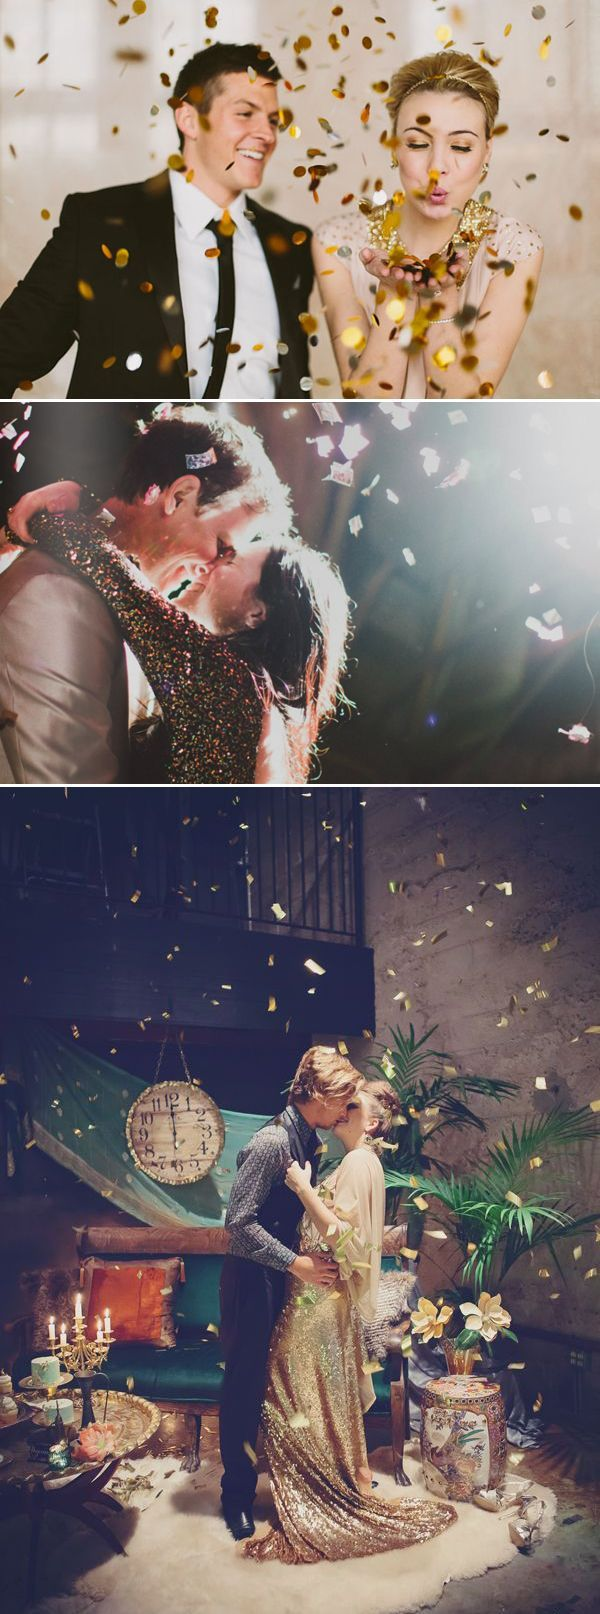 21 Cute New Year's Eve Couple Photo Ideas New years